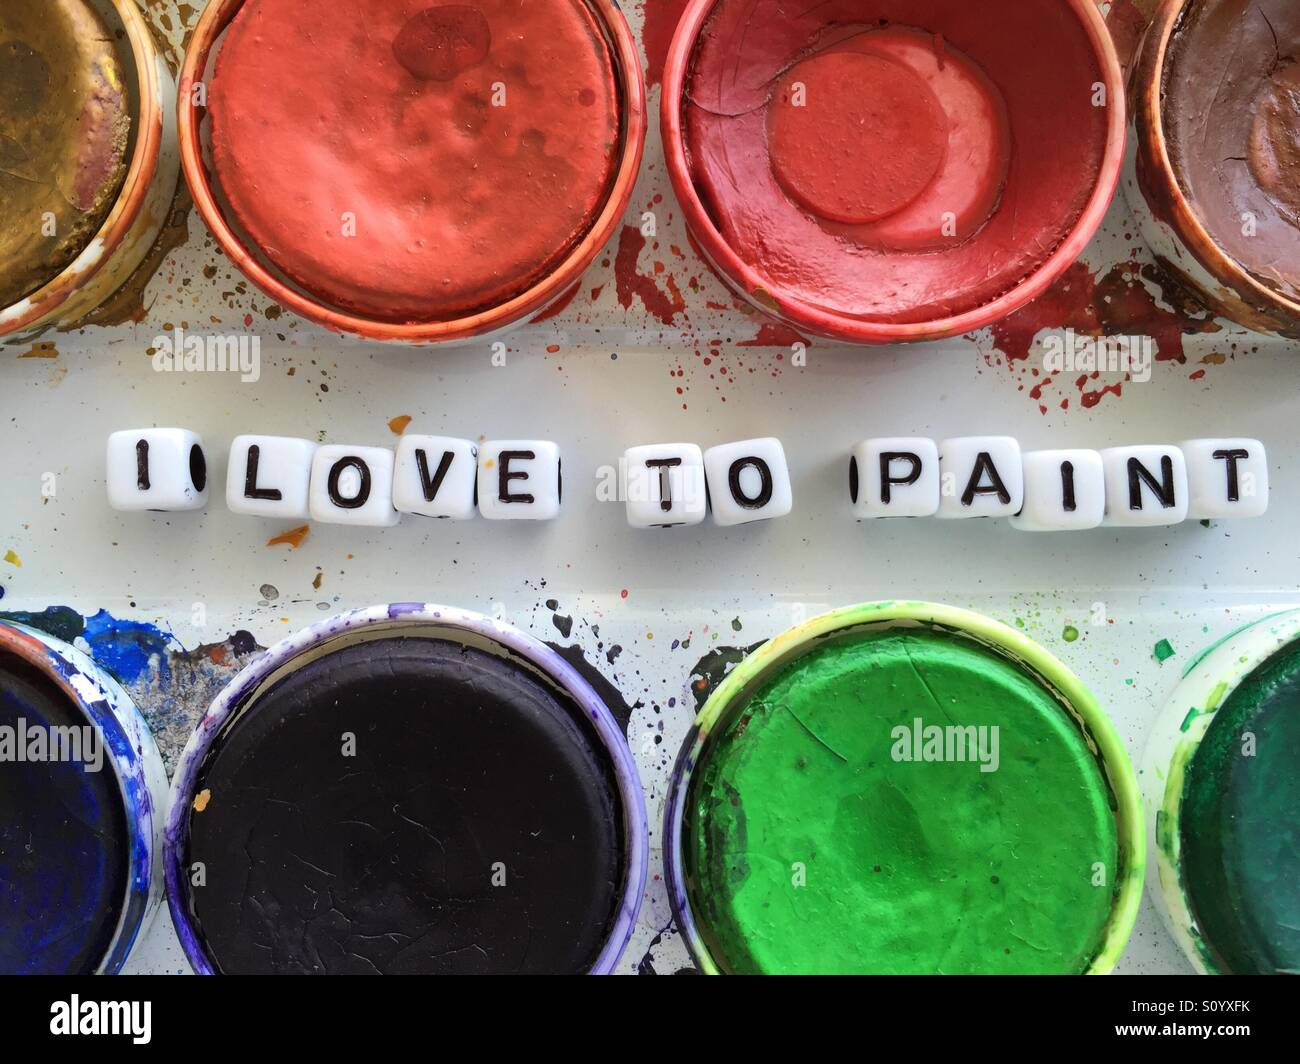 I love to paint - Stock Image